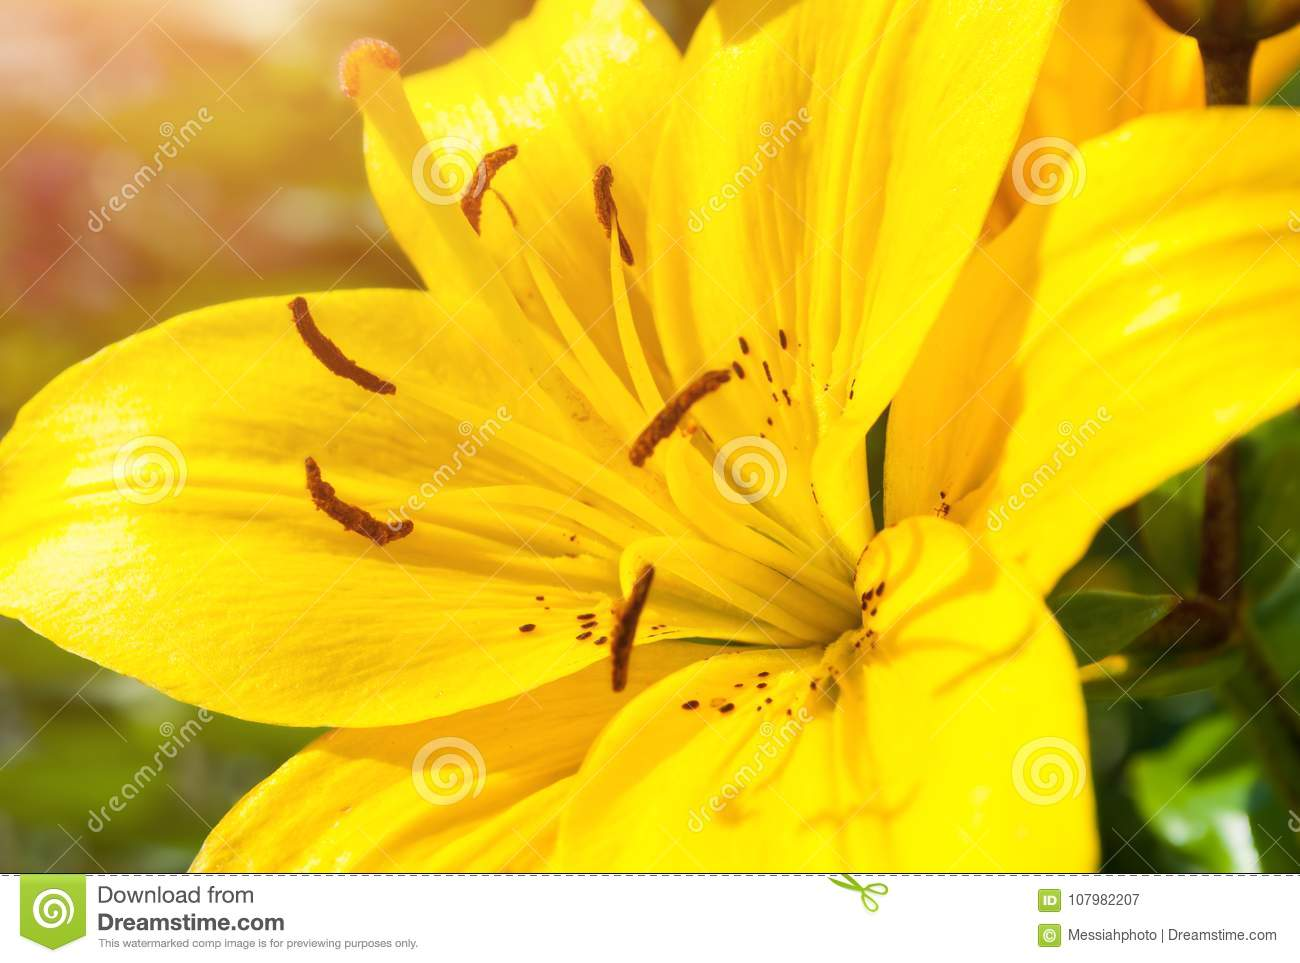 Spring flower background lily flower of yellow color blooming in spring flower background lily flower of yellow color blooming in the garden izmirmasajfo